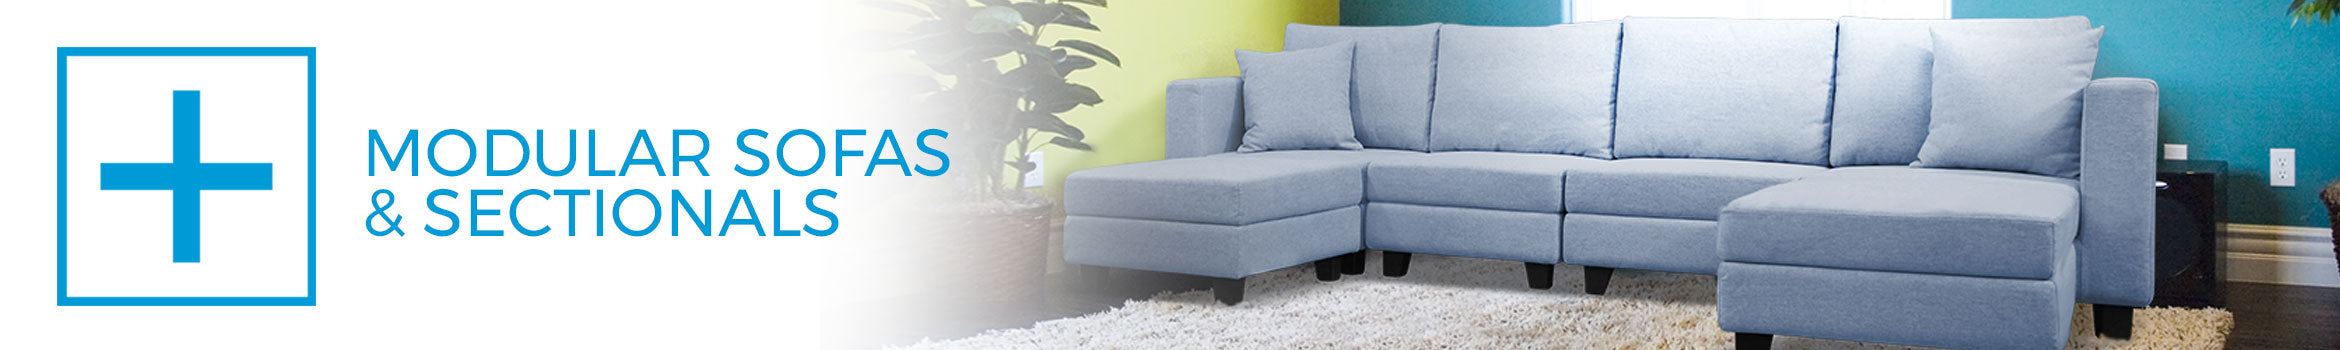 Modular Sofas & Sectionals - Small Space Plus - Toronto